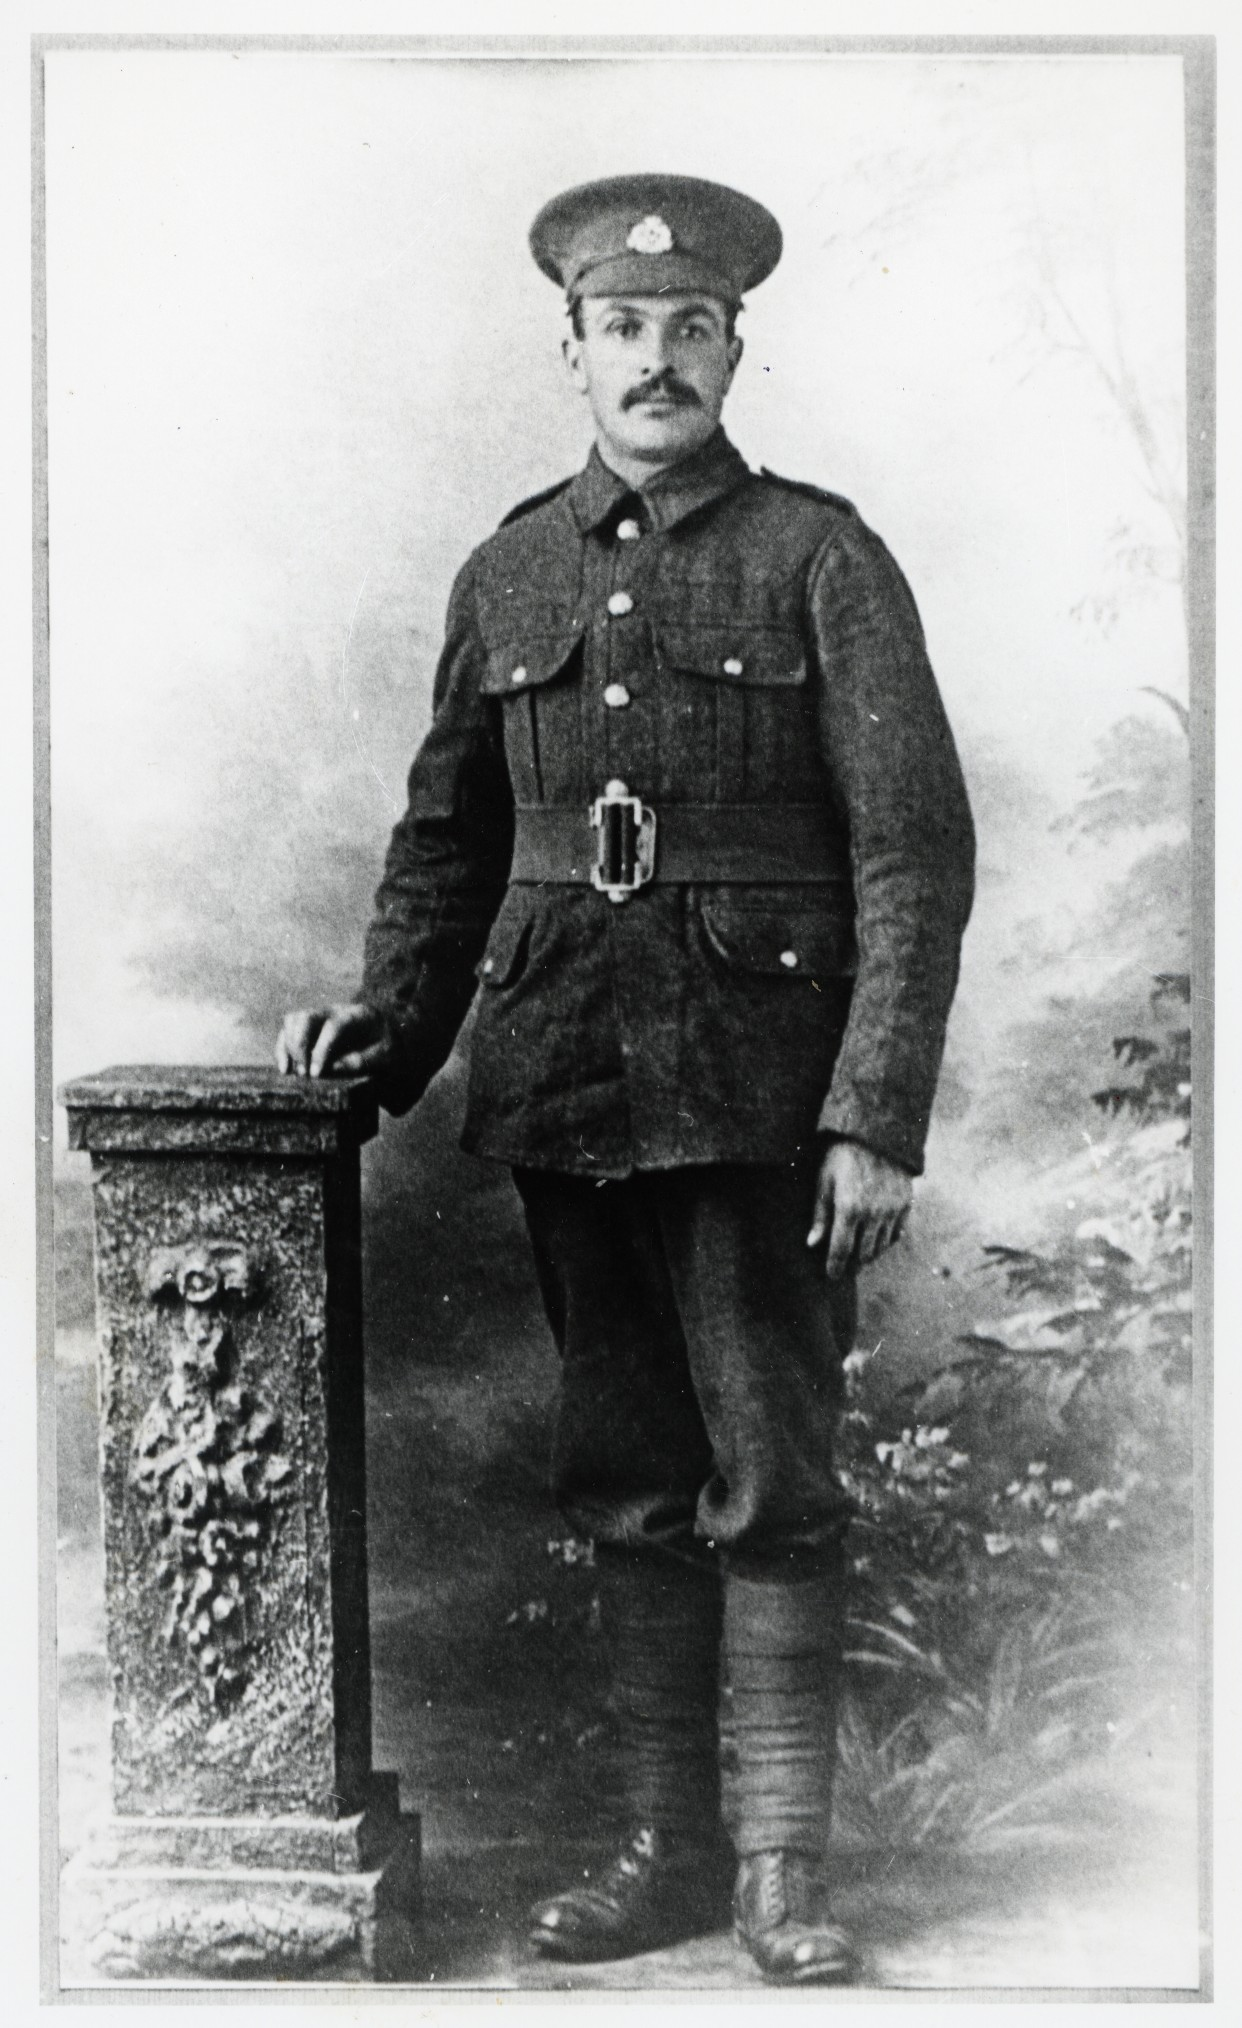 Fred Holbrow, Gallipoli survivor and witness to the death of Stanley Scarff.